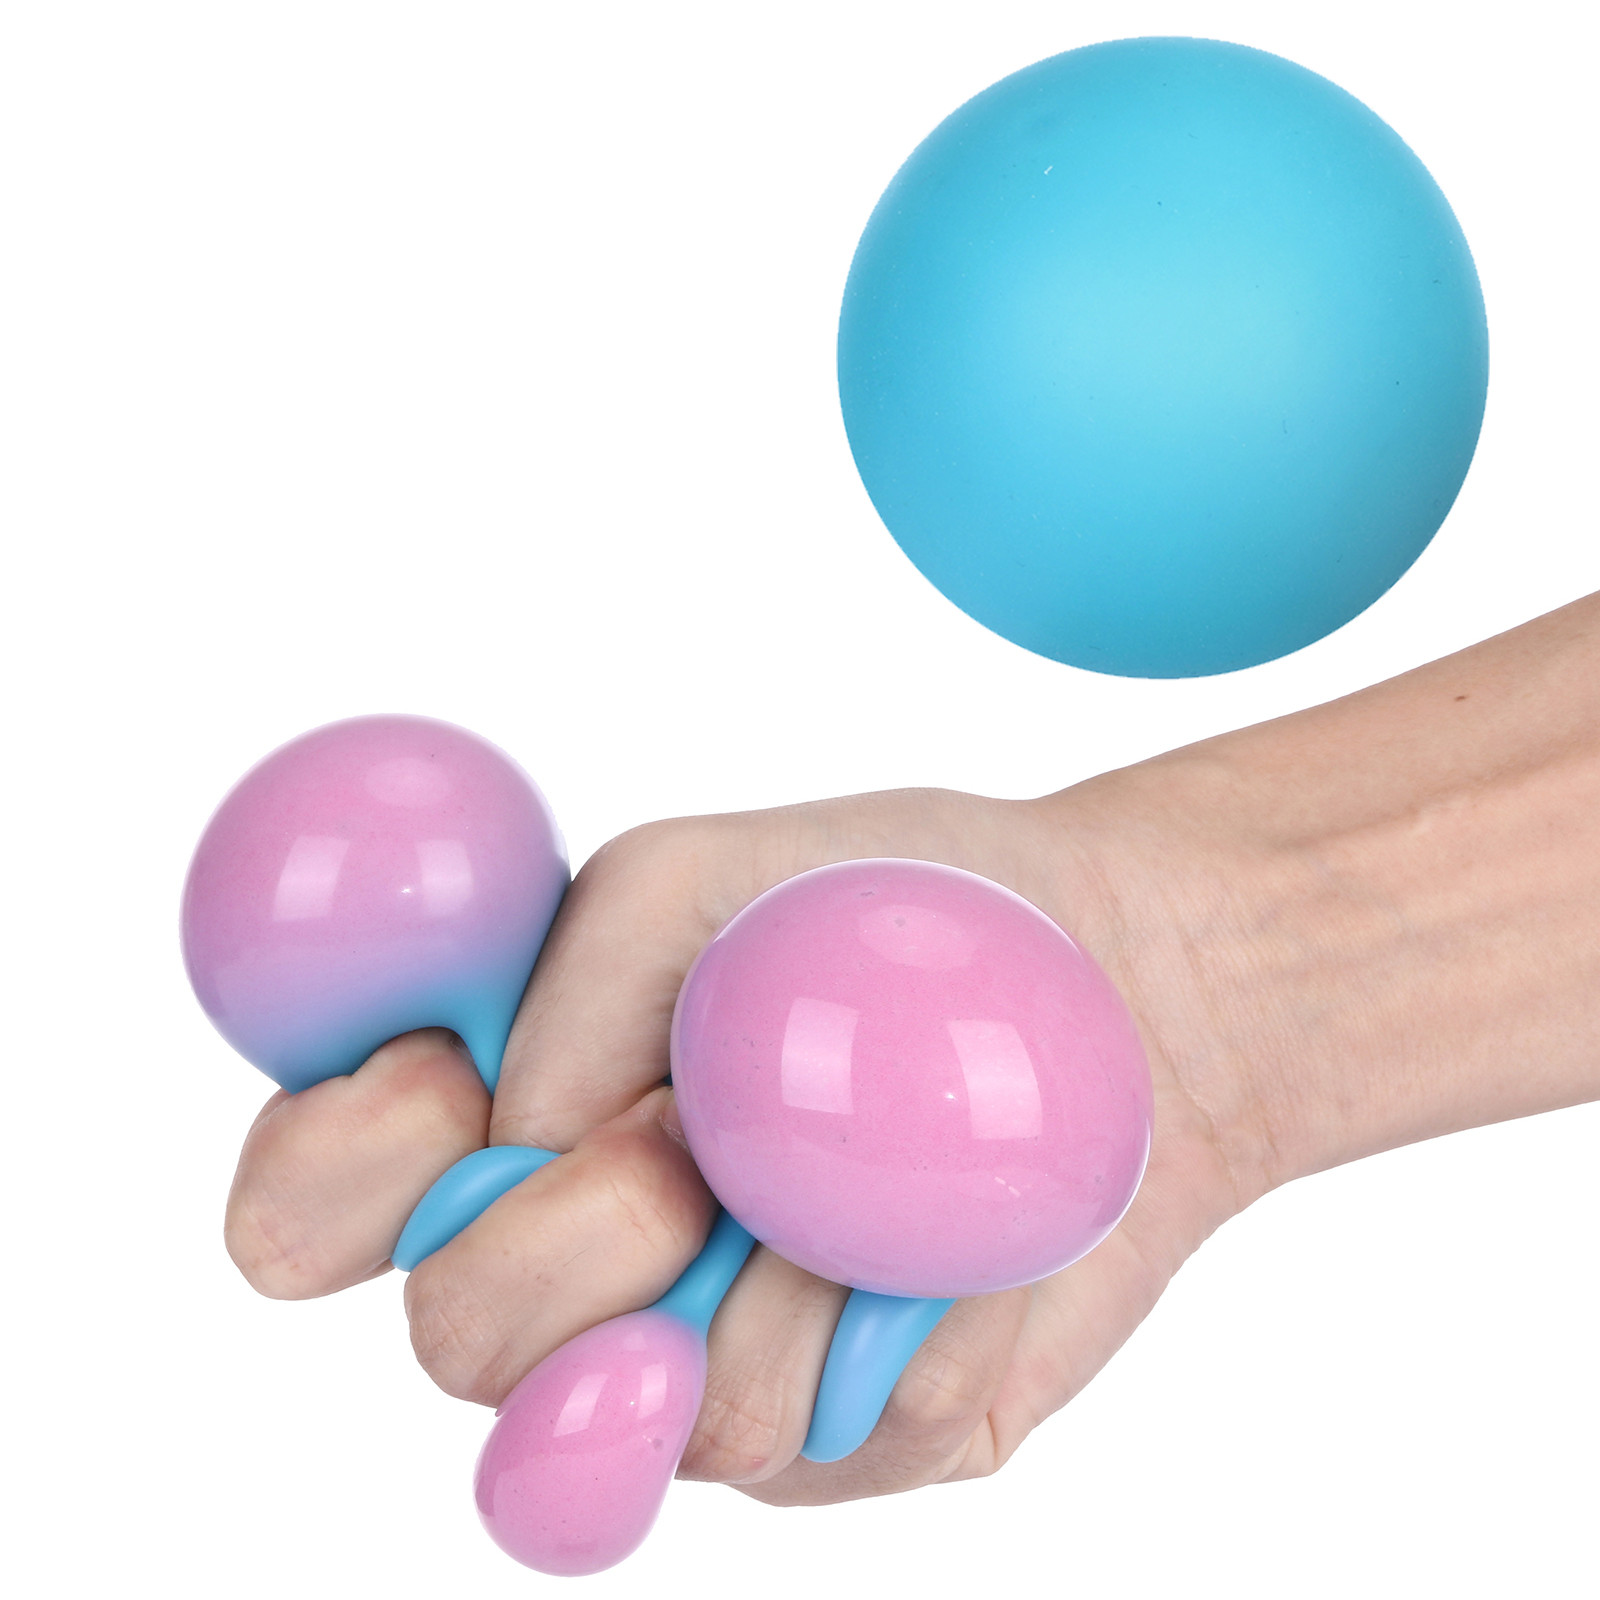 Stress Relief Ball Toys Change Colour Squeezing Balls For Kids And Adults Toy Decompression Toy For Children img5